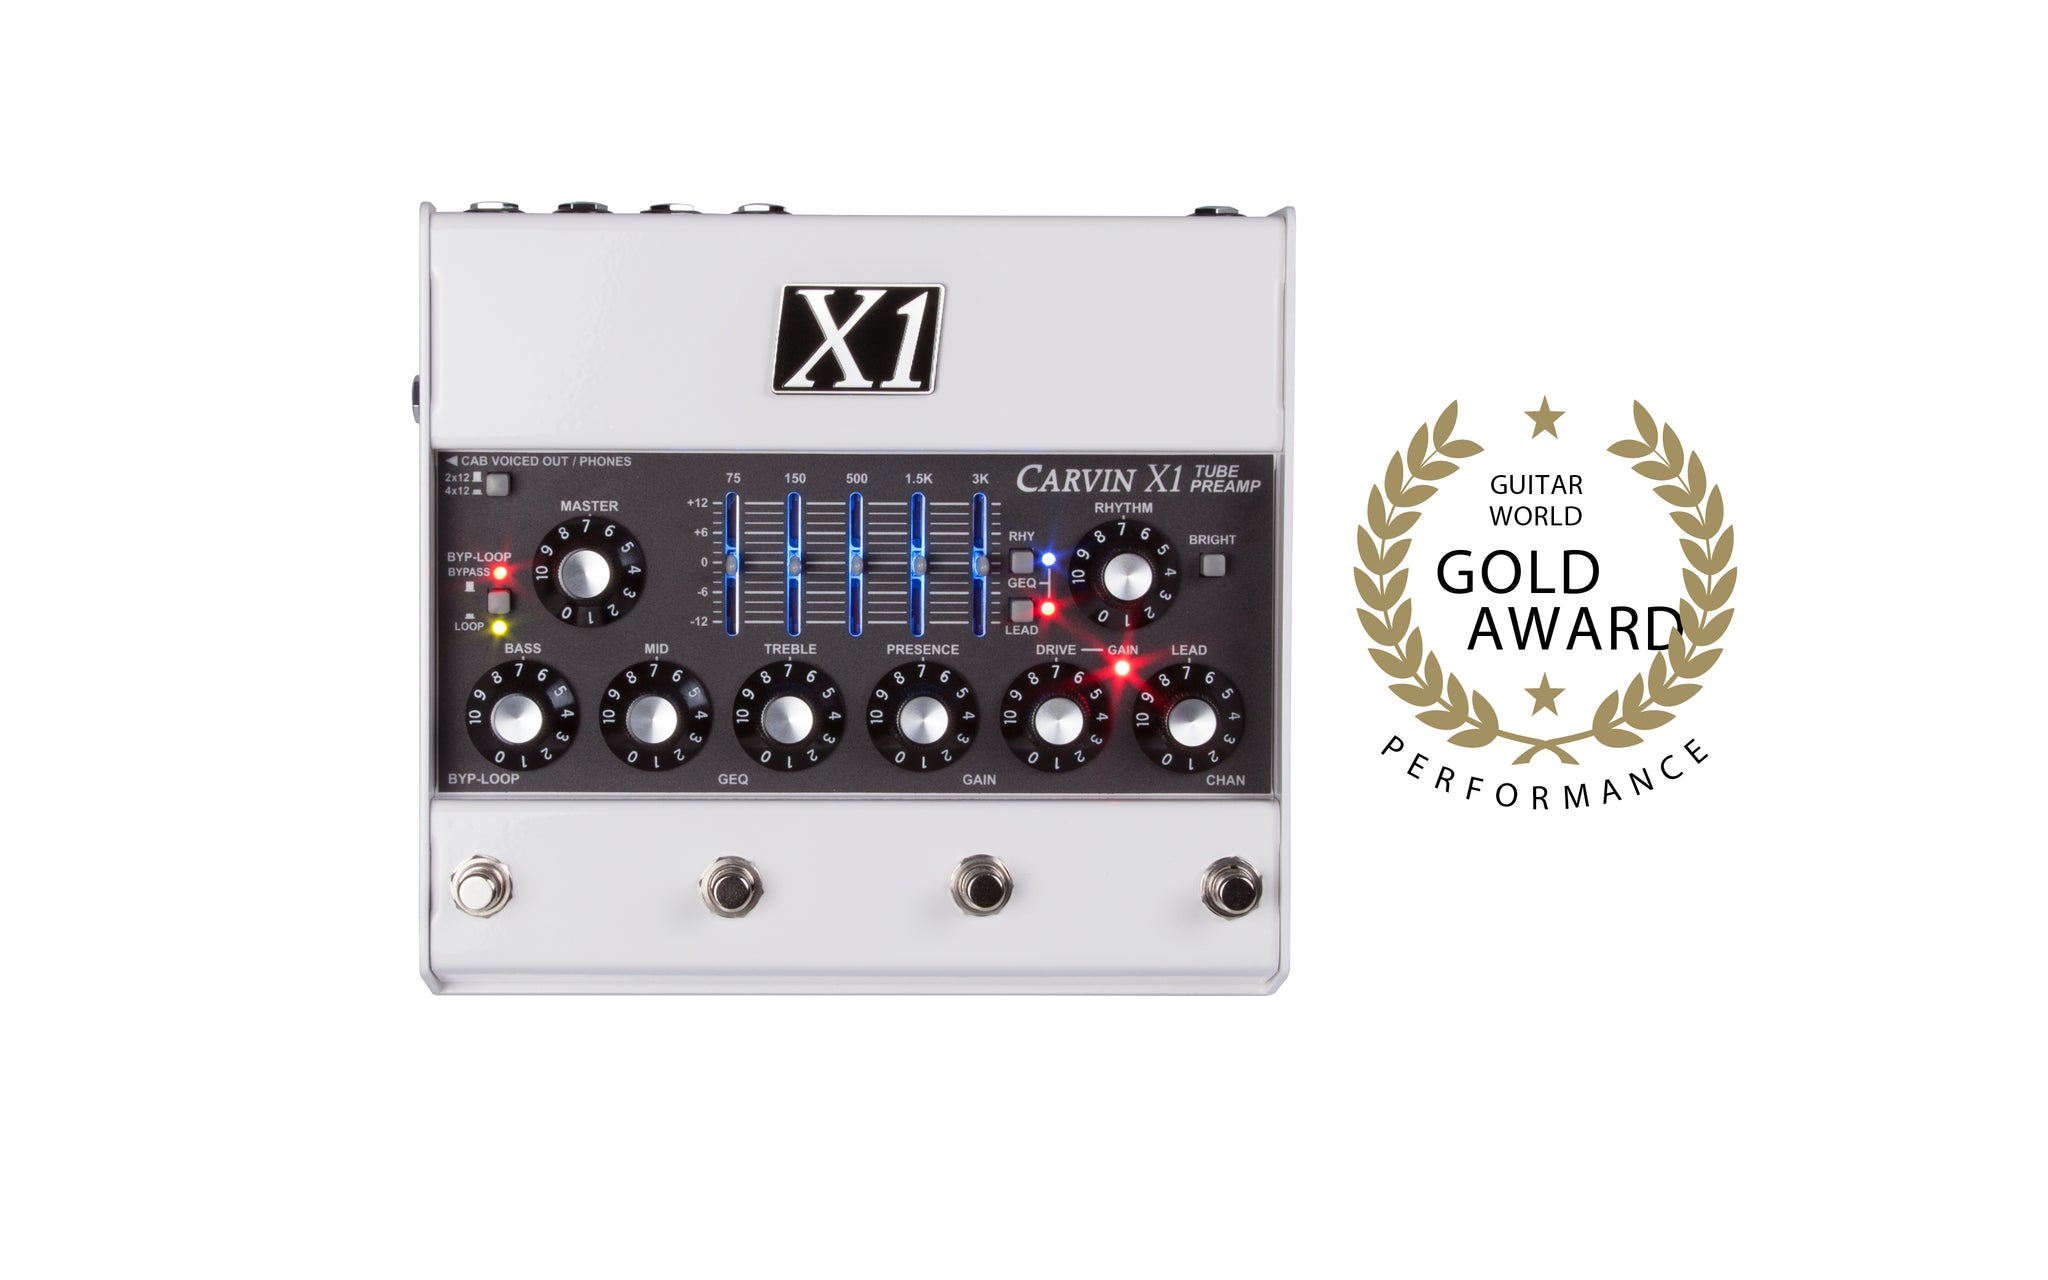 Carvin Amps And Audio Gear For Musicians Sound Professionals 300w High Power Amplifier Circuit Schematic Electronics X1 Tube Preamp Wins Gold Award